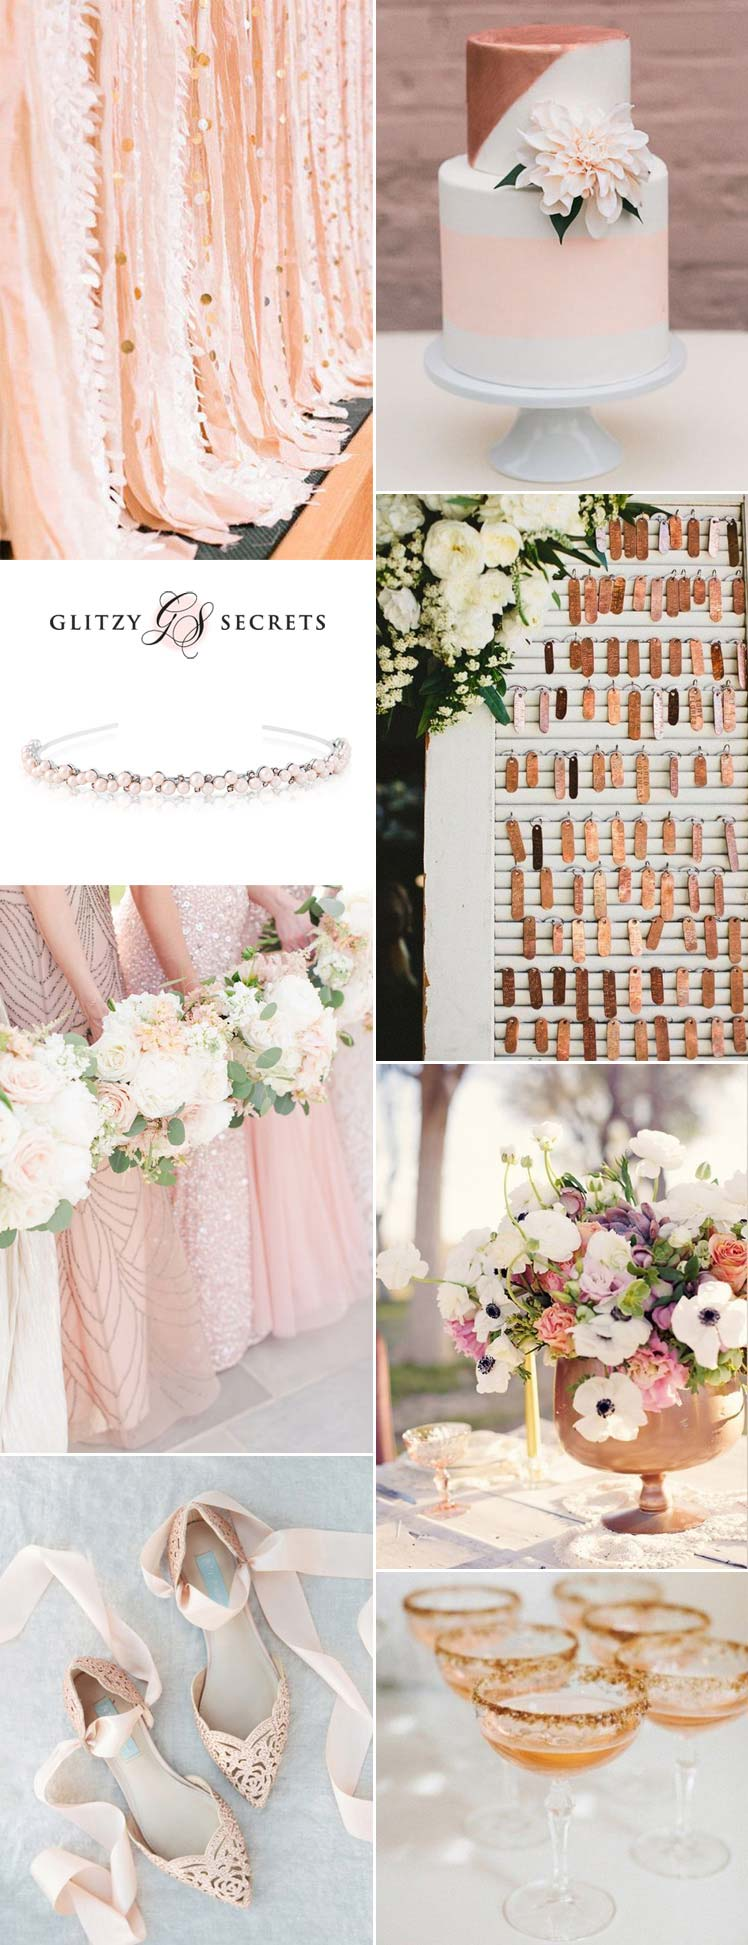 Blush and bronze wedding inspiration ideas